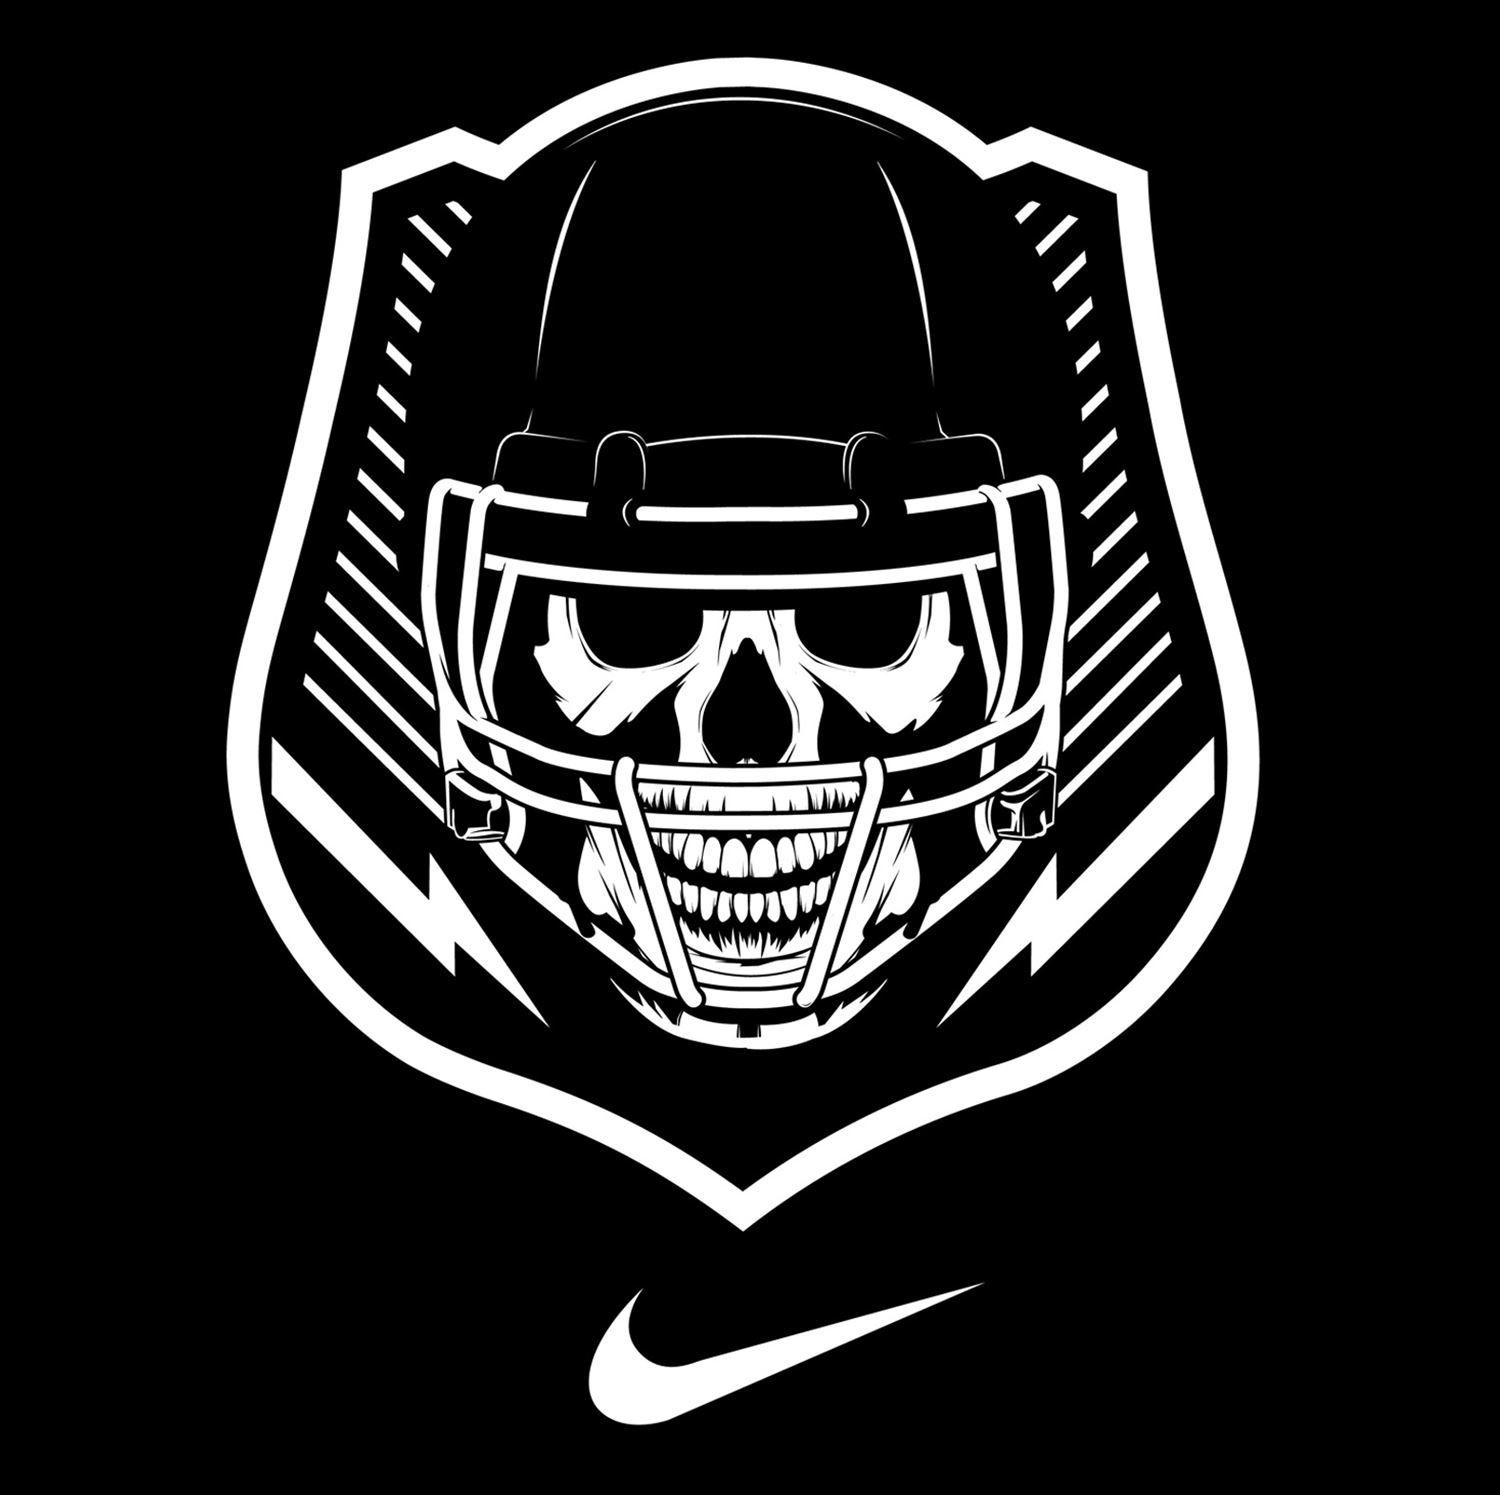 Nike Football - 2014 - 2014, 3/23 Training Camp (Atlanta, GA)